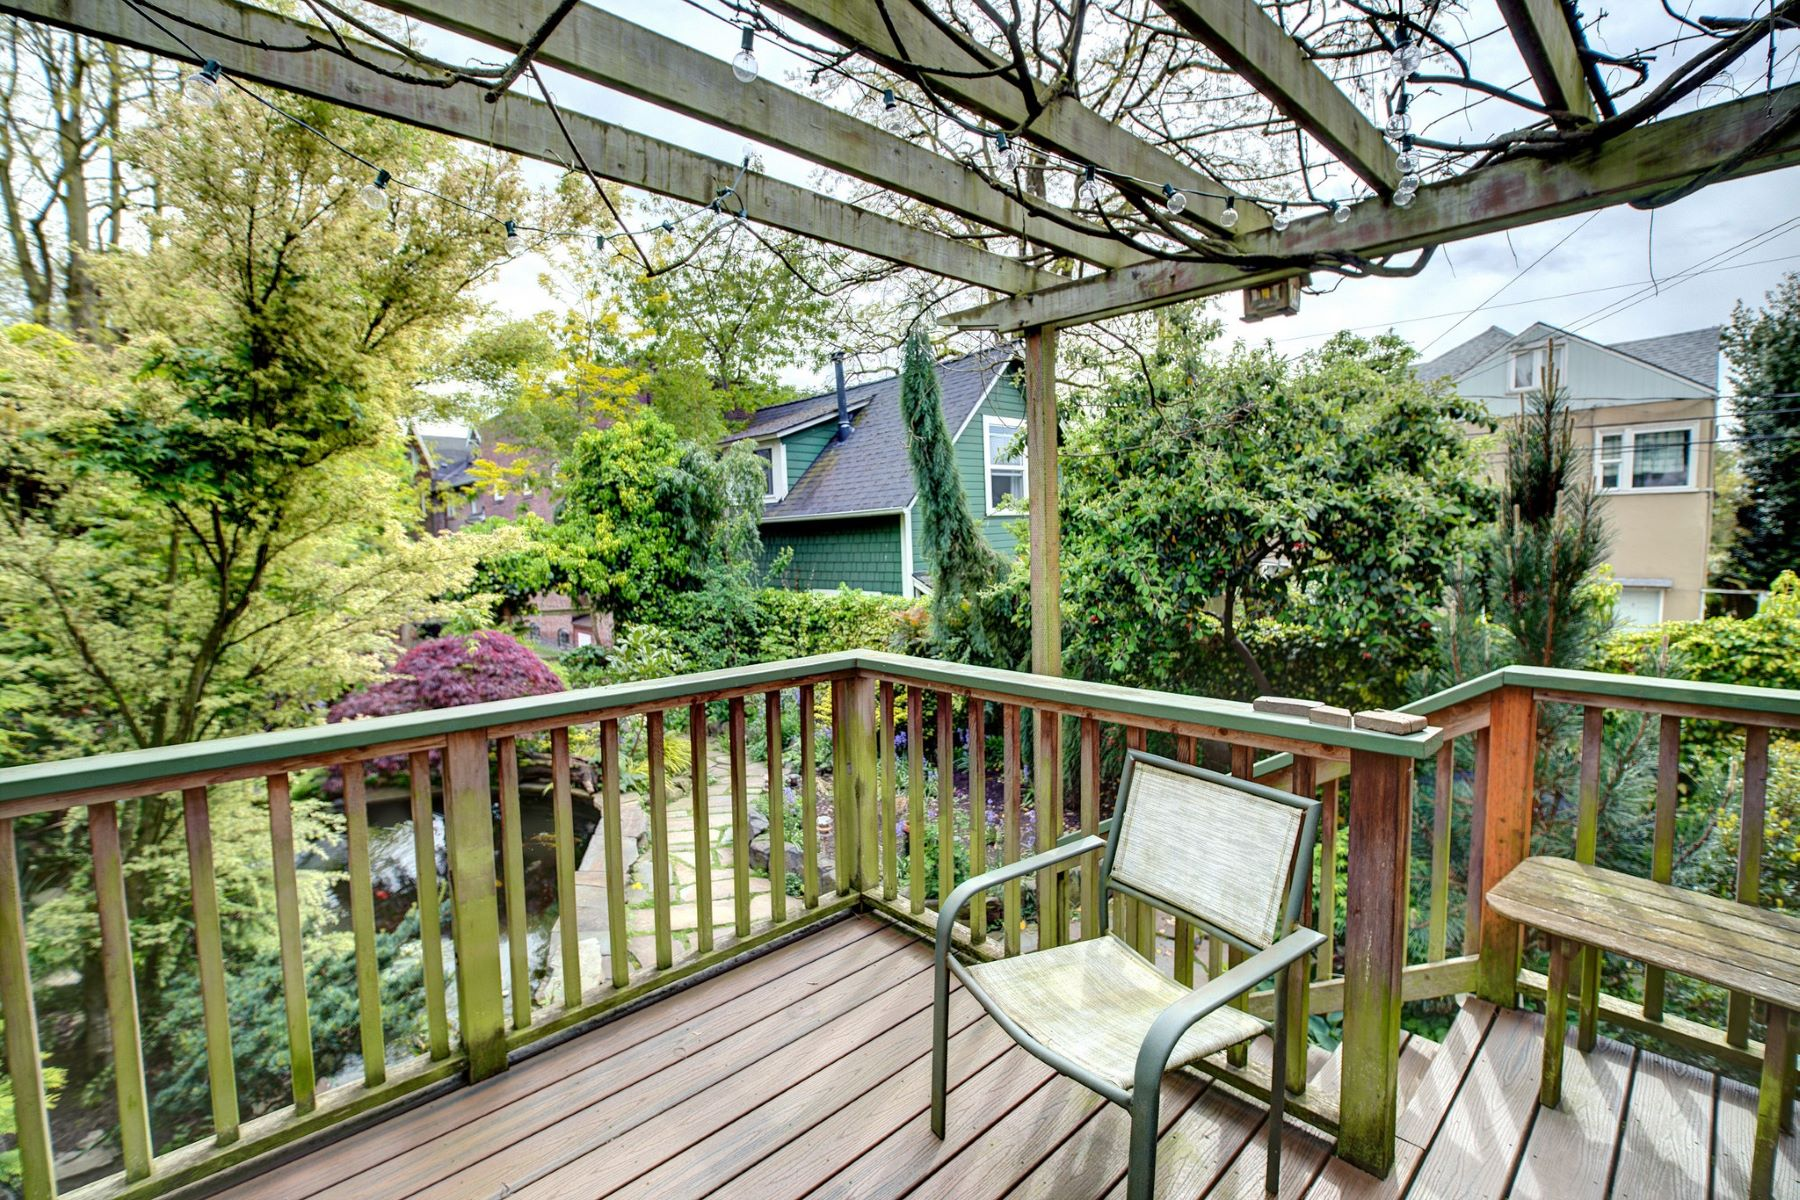 Additional photo for property listing at Capitol Hill Duplex, Endless Options 1419 E John Street Seattle, Washington 98112 United States